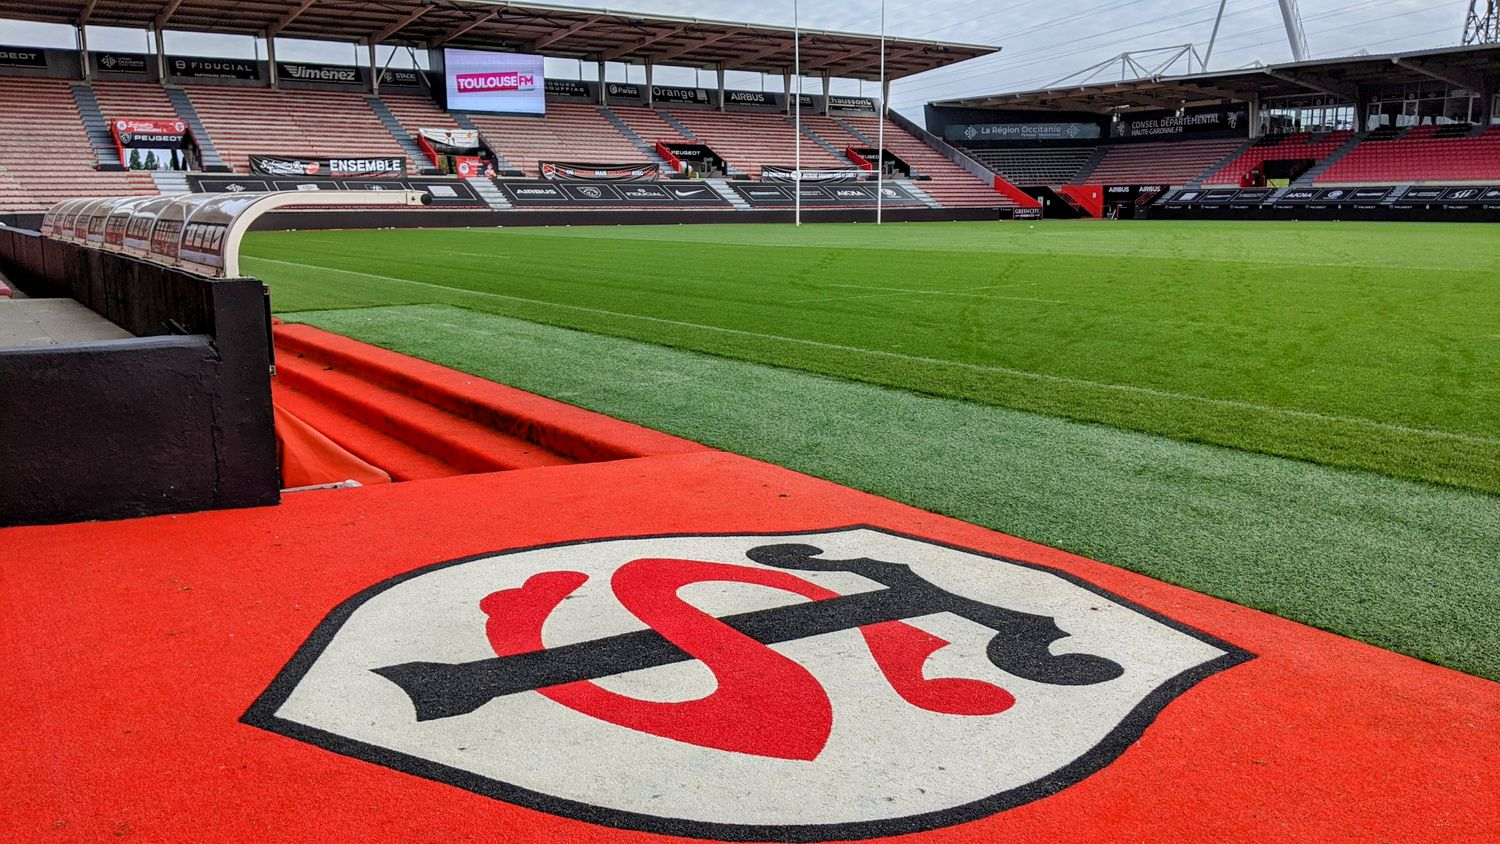 Stade Toulousain Rugby XV